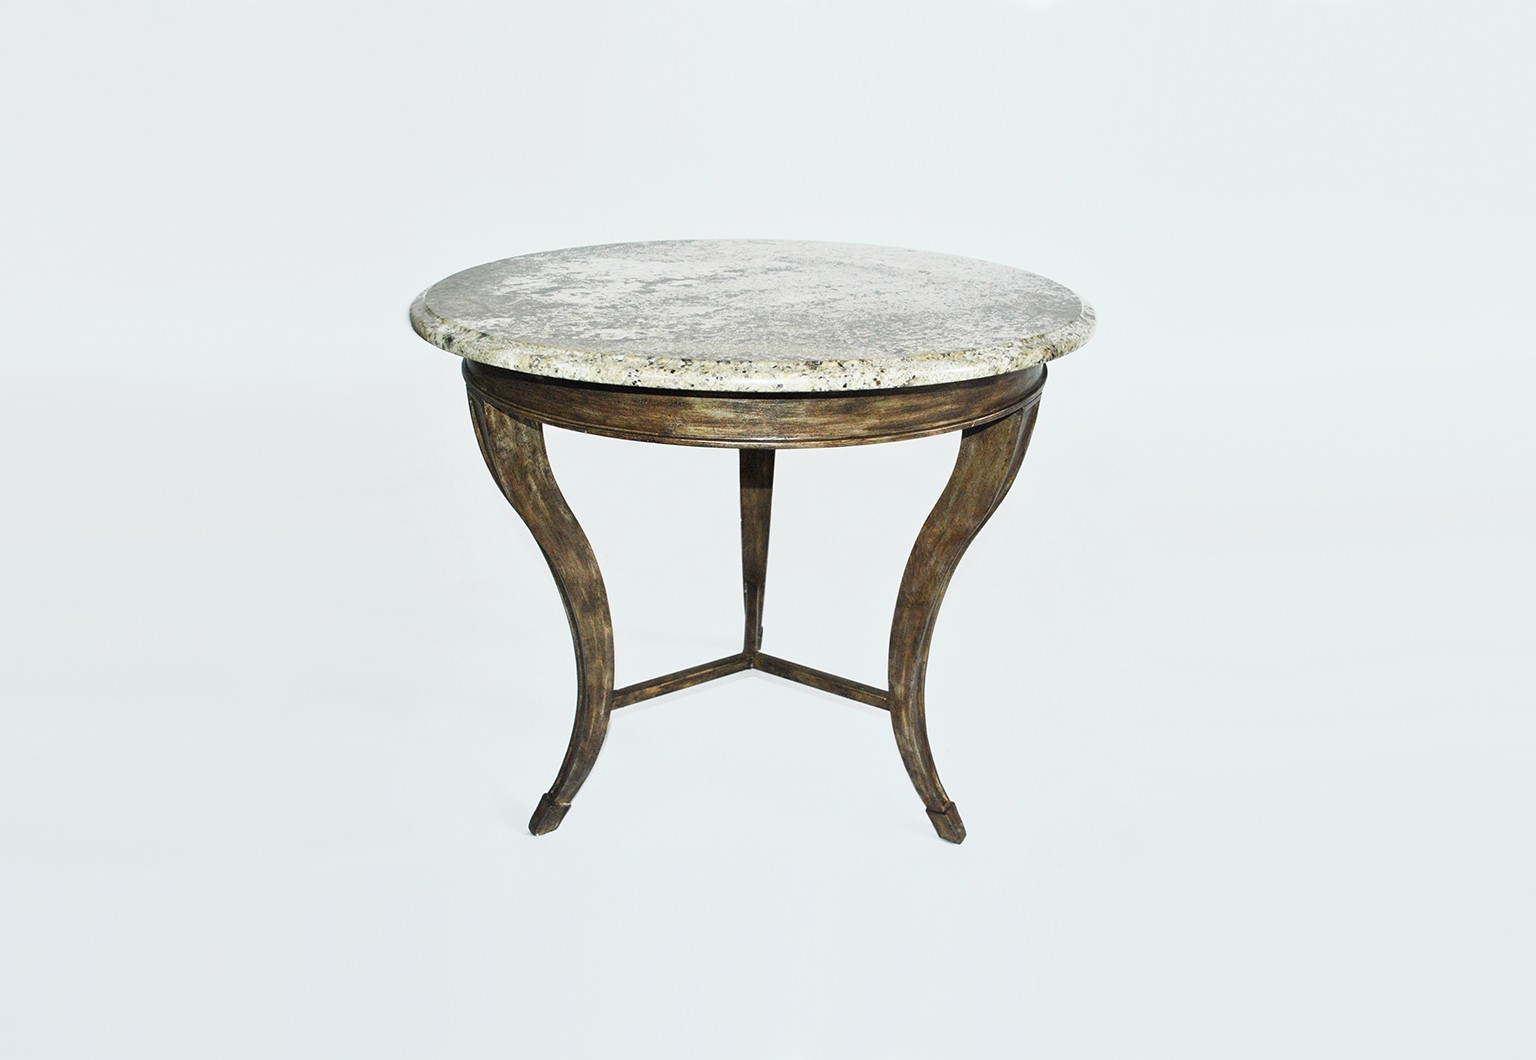 Scrolled metal and wood coffee table - Grant End Table